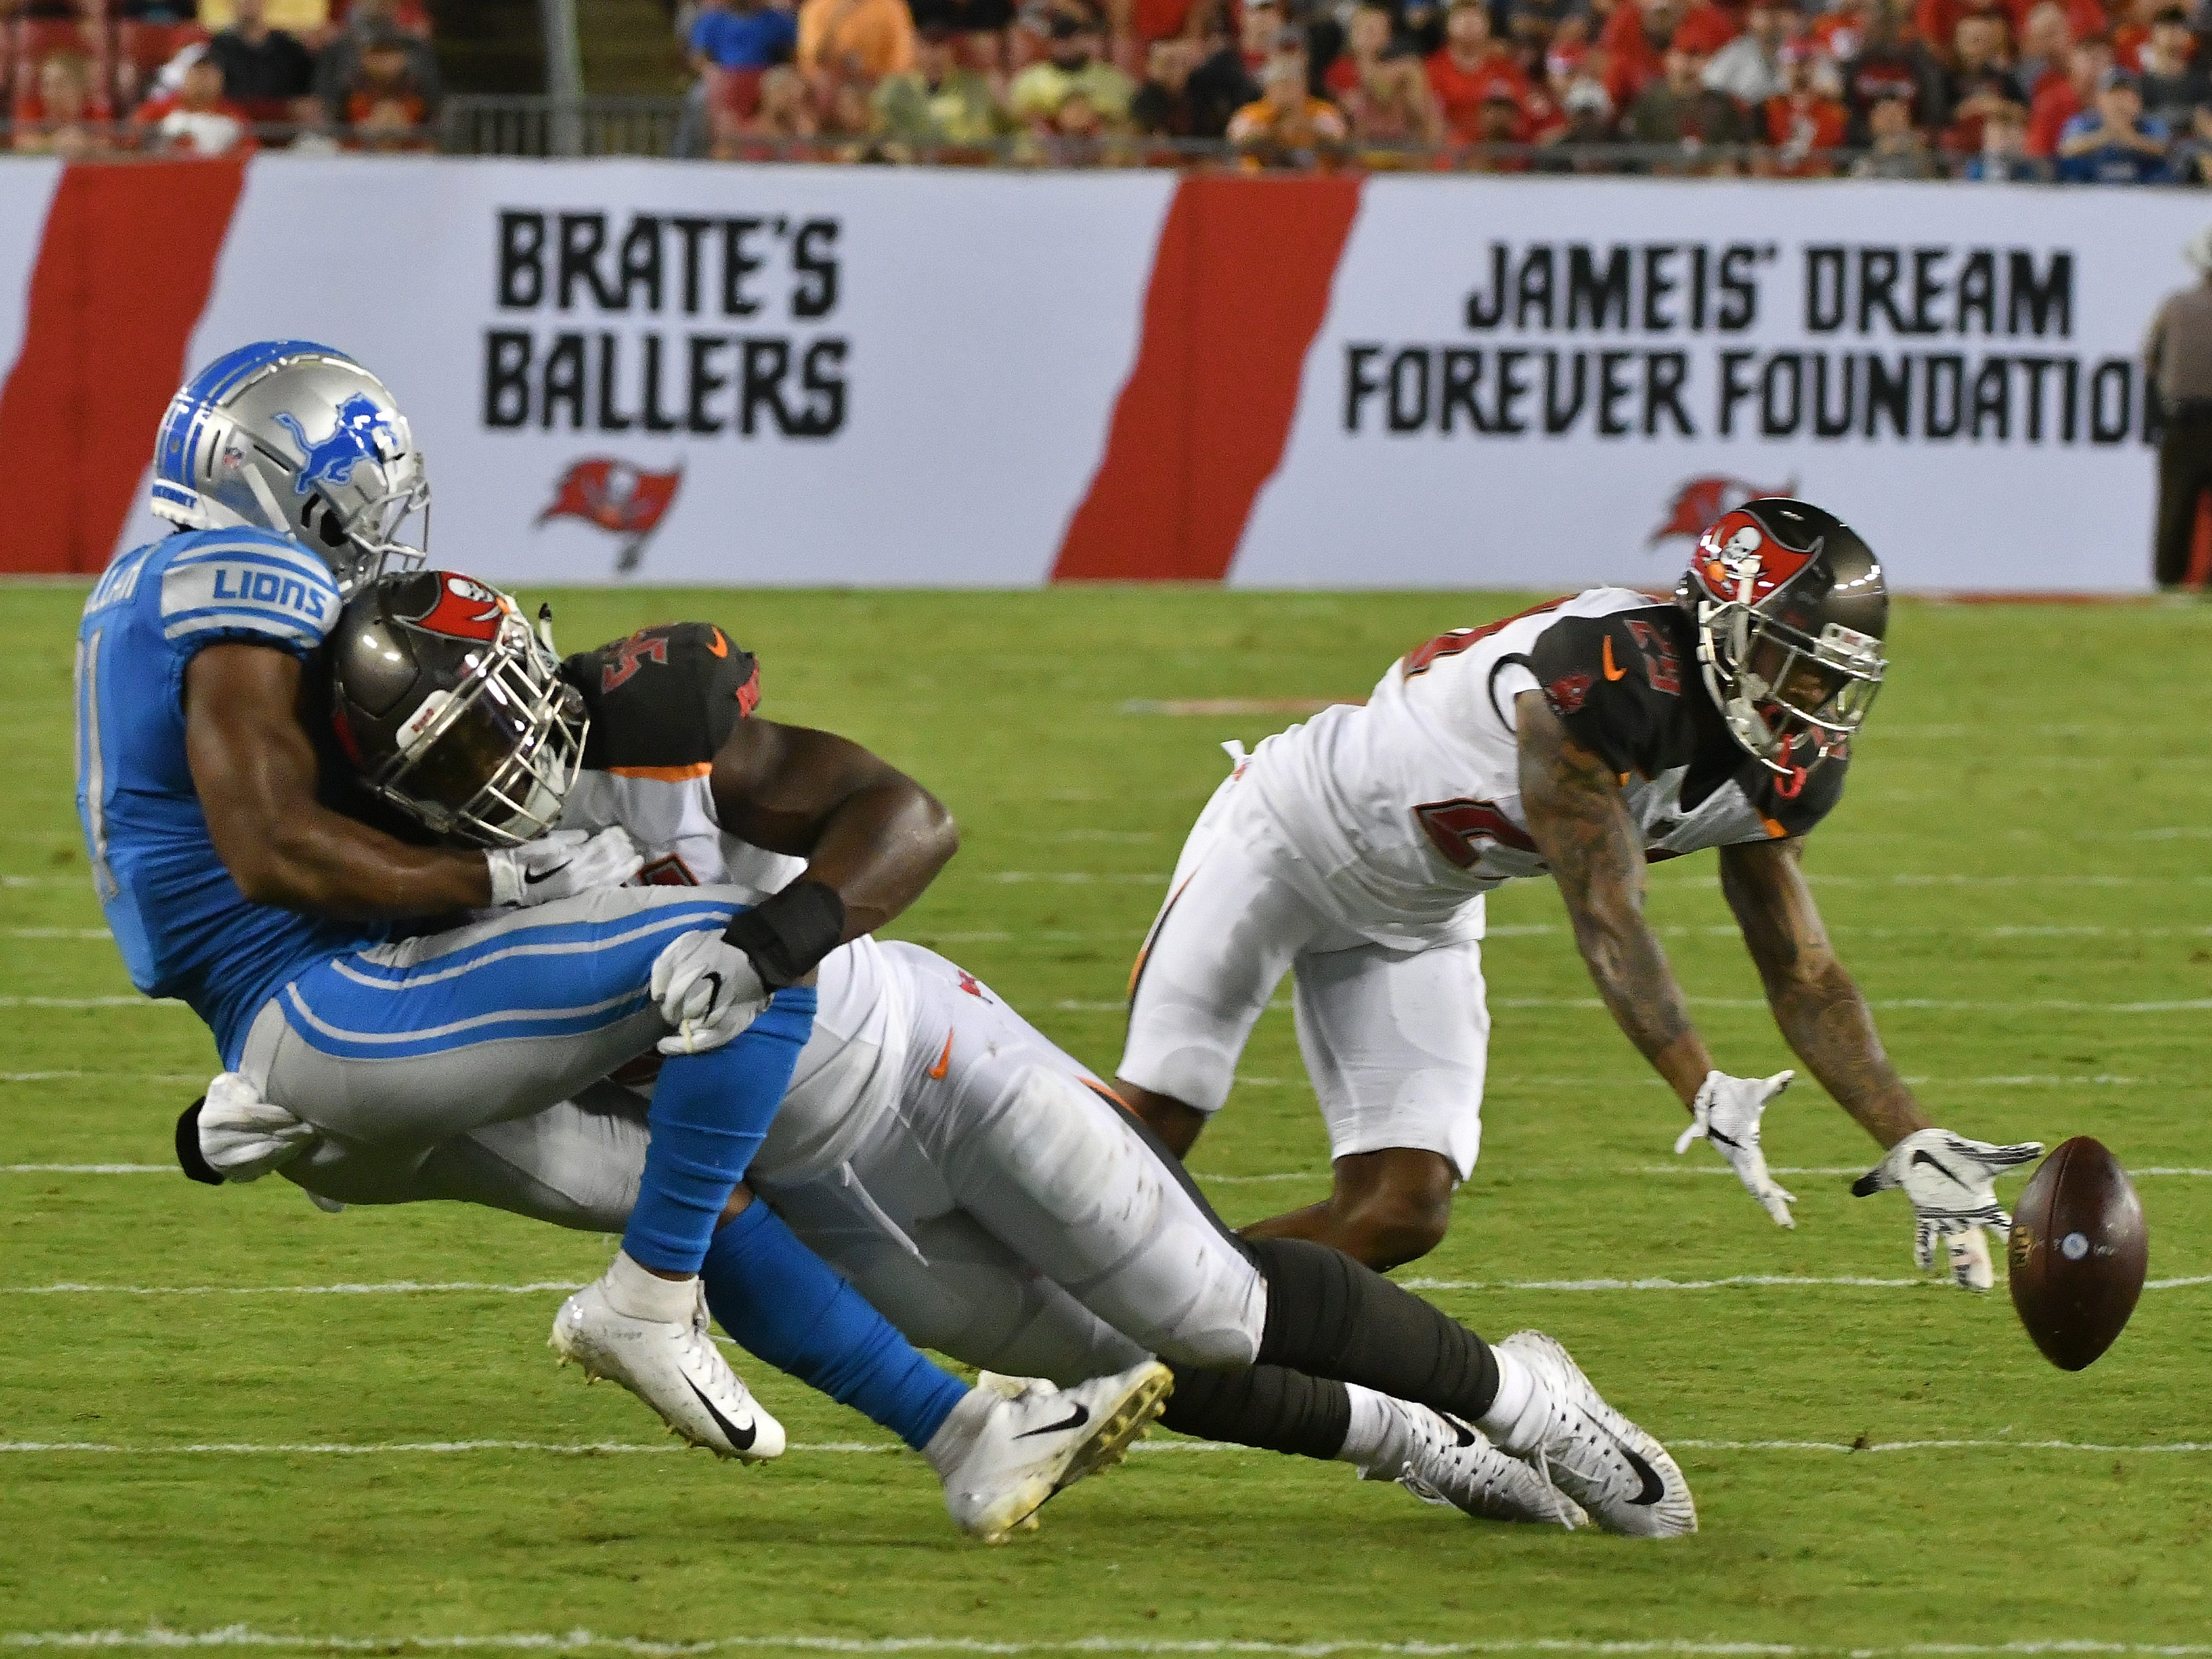 Lions Ameer Abdullah loses the ball after getting hit in the second quarter.